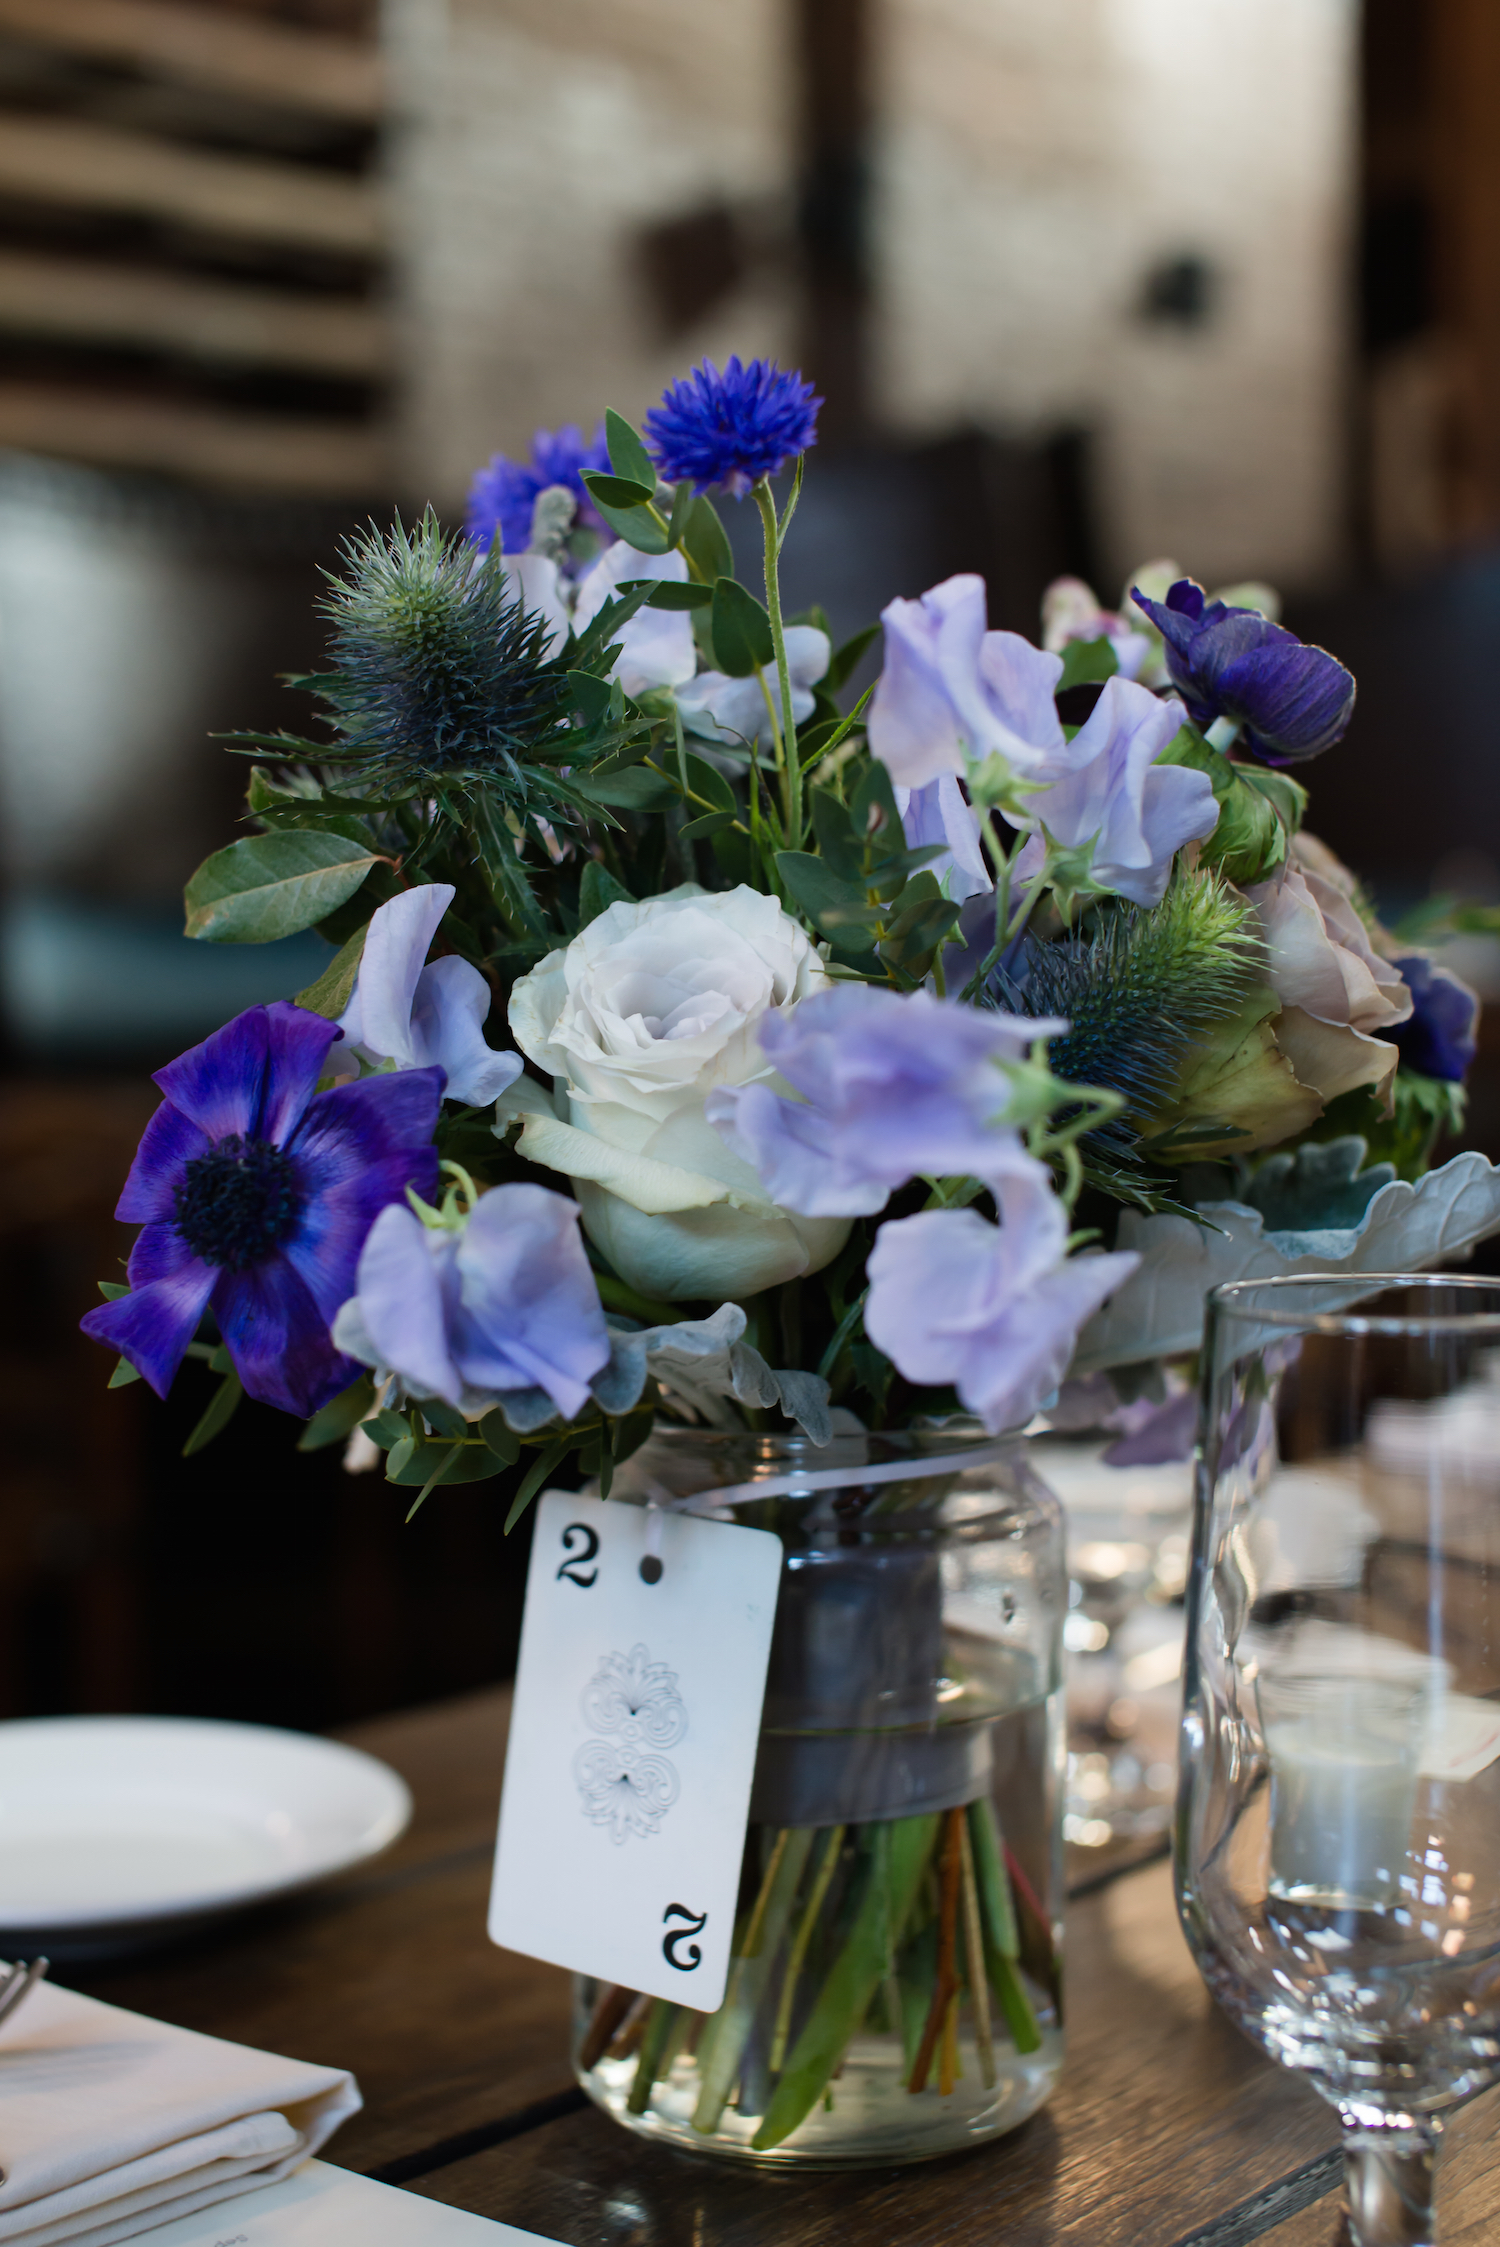 FULL APERTURE FLORAL & 3229 - KIMBERLY MUFFERI PHOTOGRAPHY_BROOKLYN WEDDING PHOTOGRAPHER copy.jpg